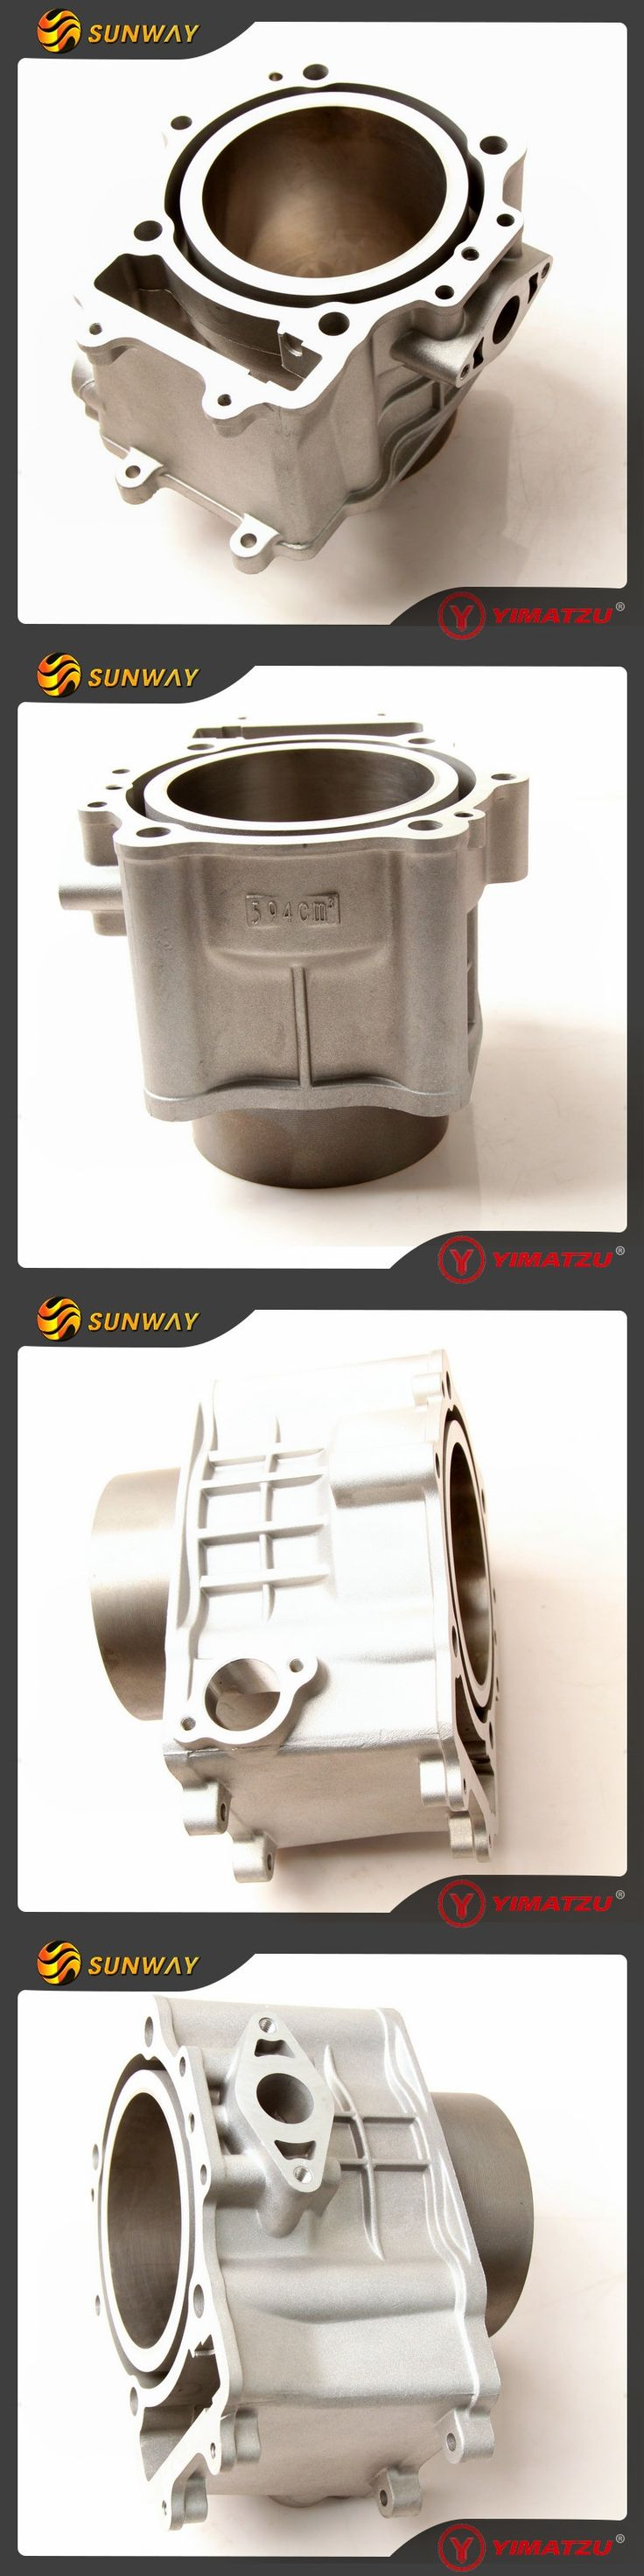 SUNWAY ATV Quad Parts 96MM Cylinder for CFMOTO CF625 X6  ATV Quad Bike Parts Number:0600-023100 Free Shipping